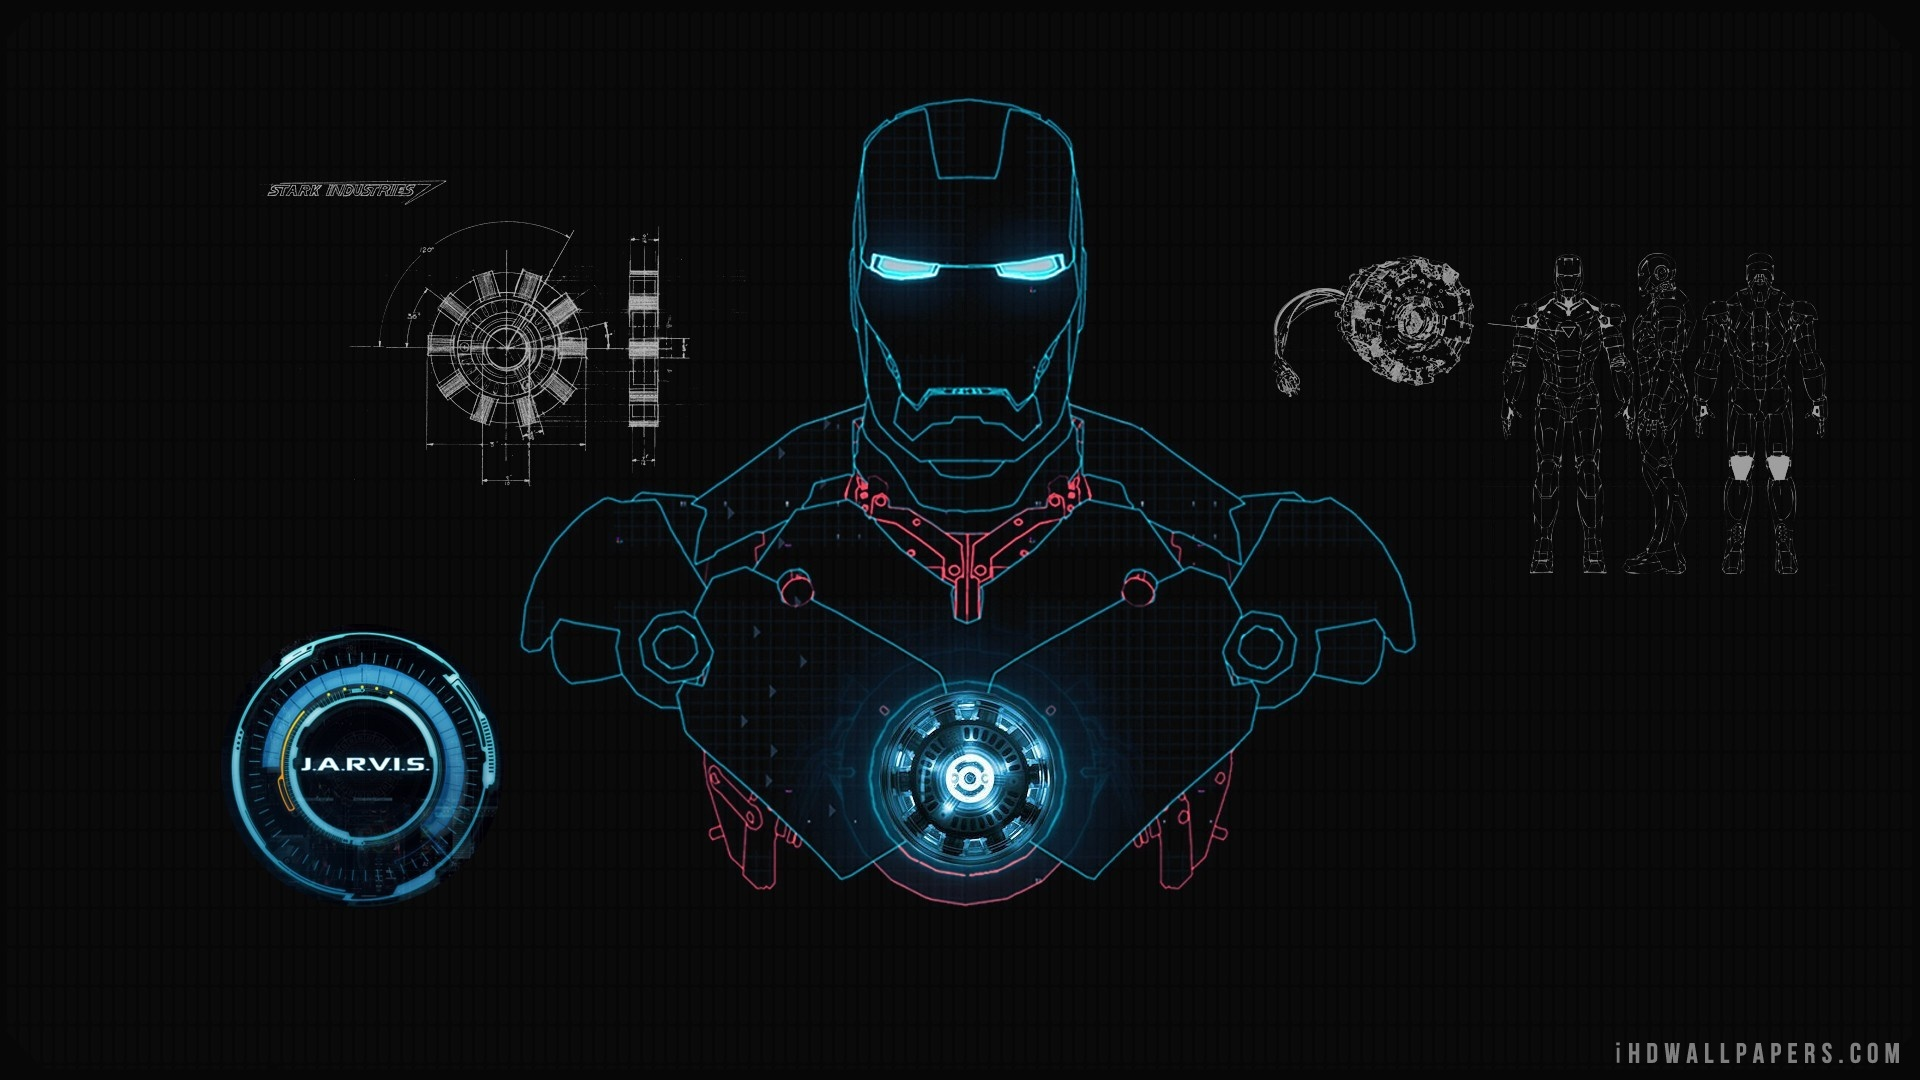 [47+] Jarvis Iron Man Wallpaper HD on WallpaperSafari